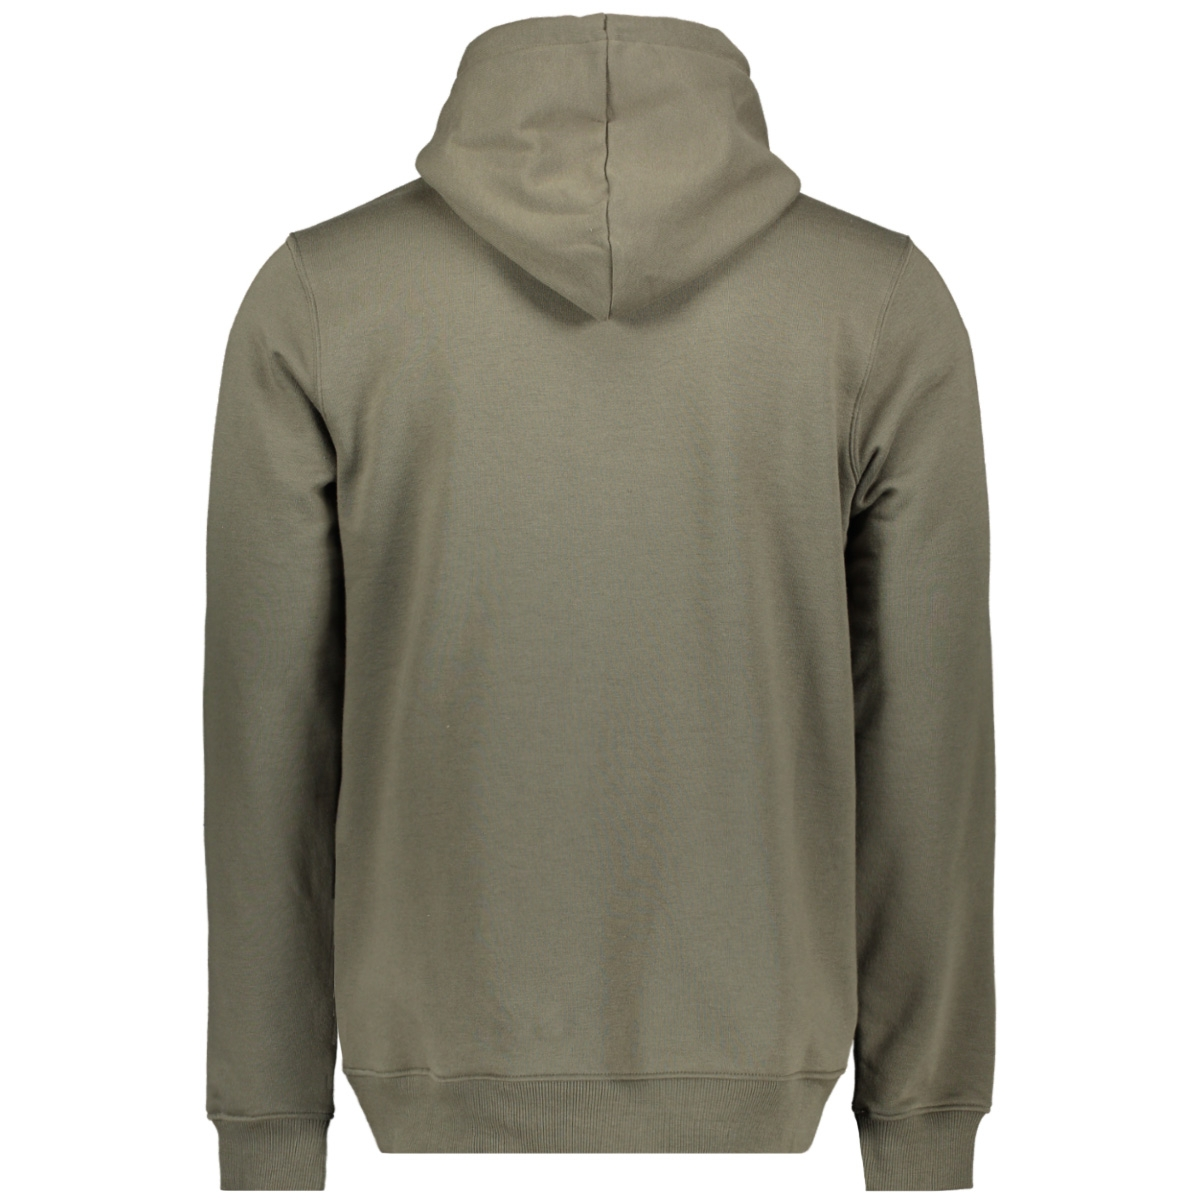 bower sw 42039 cars sweater 19 army